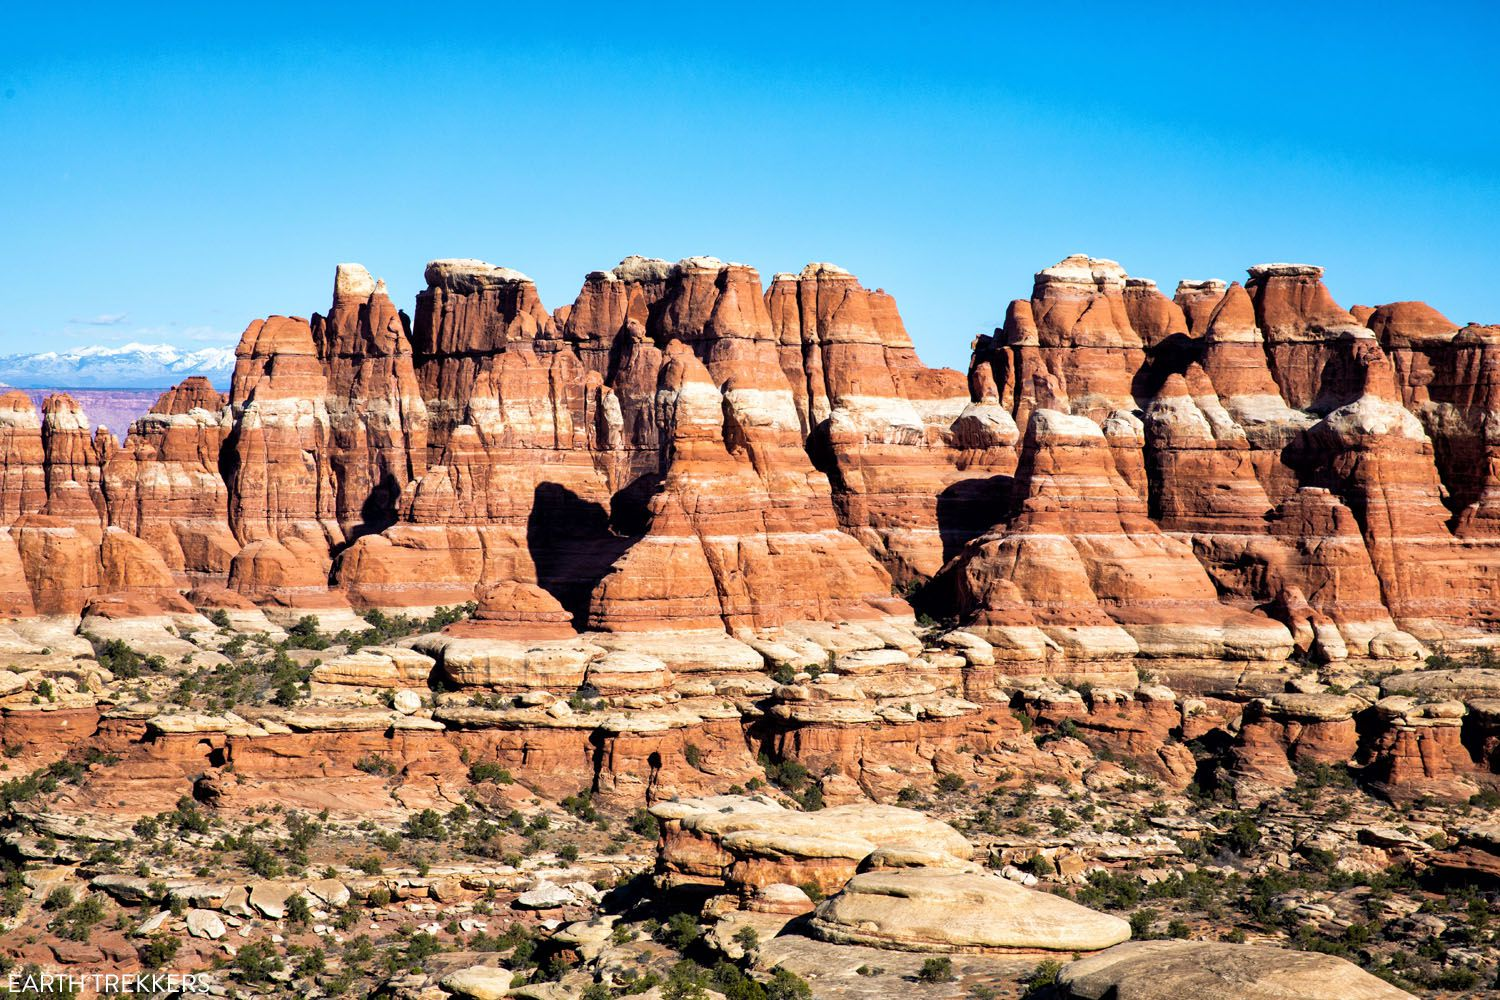 The Needles Canyonlands